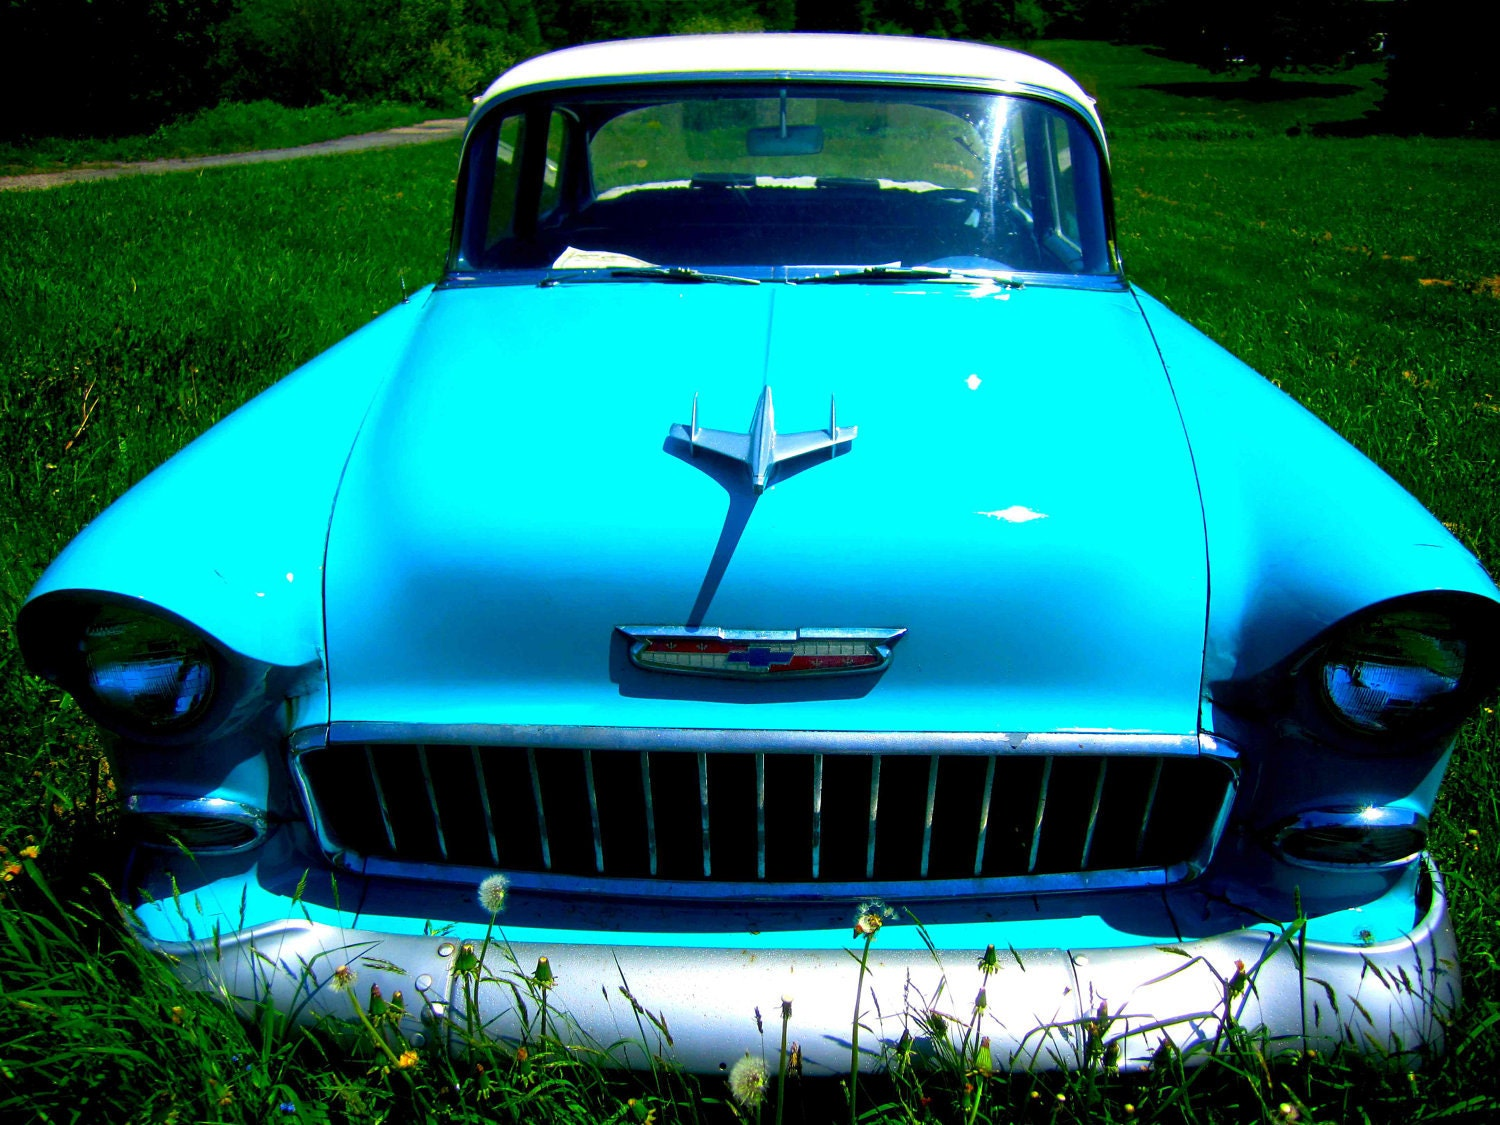 57 Chevy Classic Cars 4 8 X 10 Photo Print/ Home Decor/ Wall